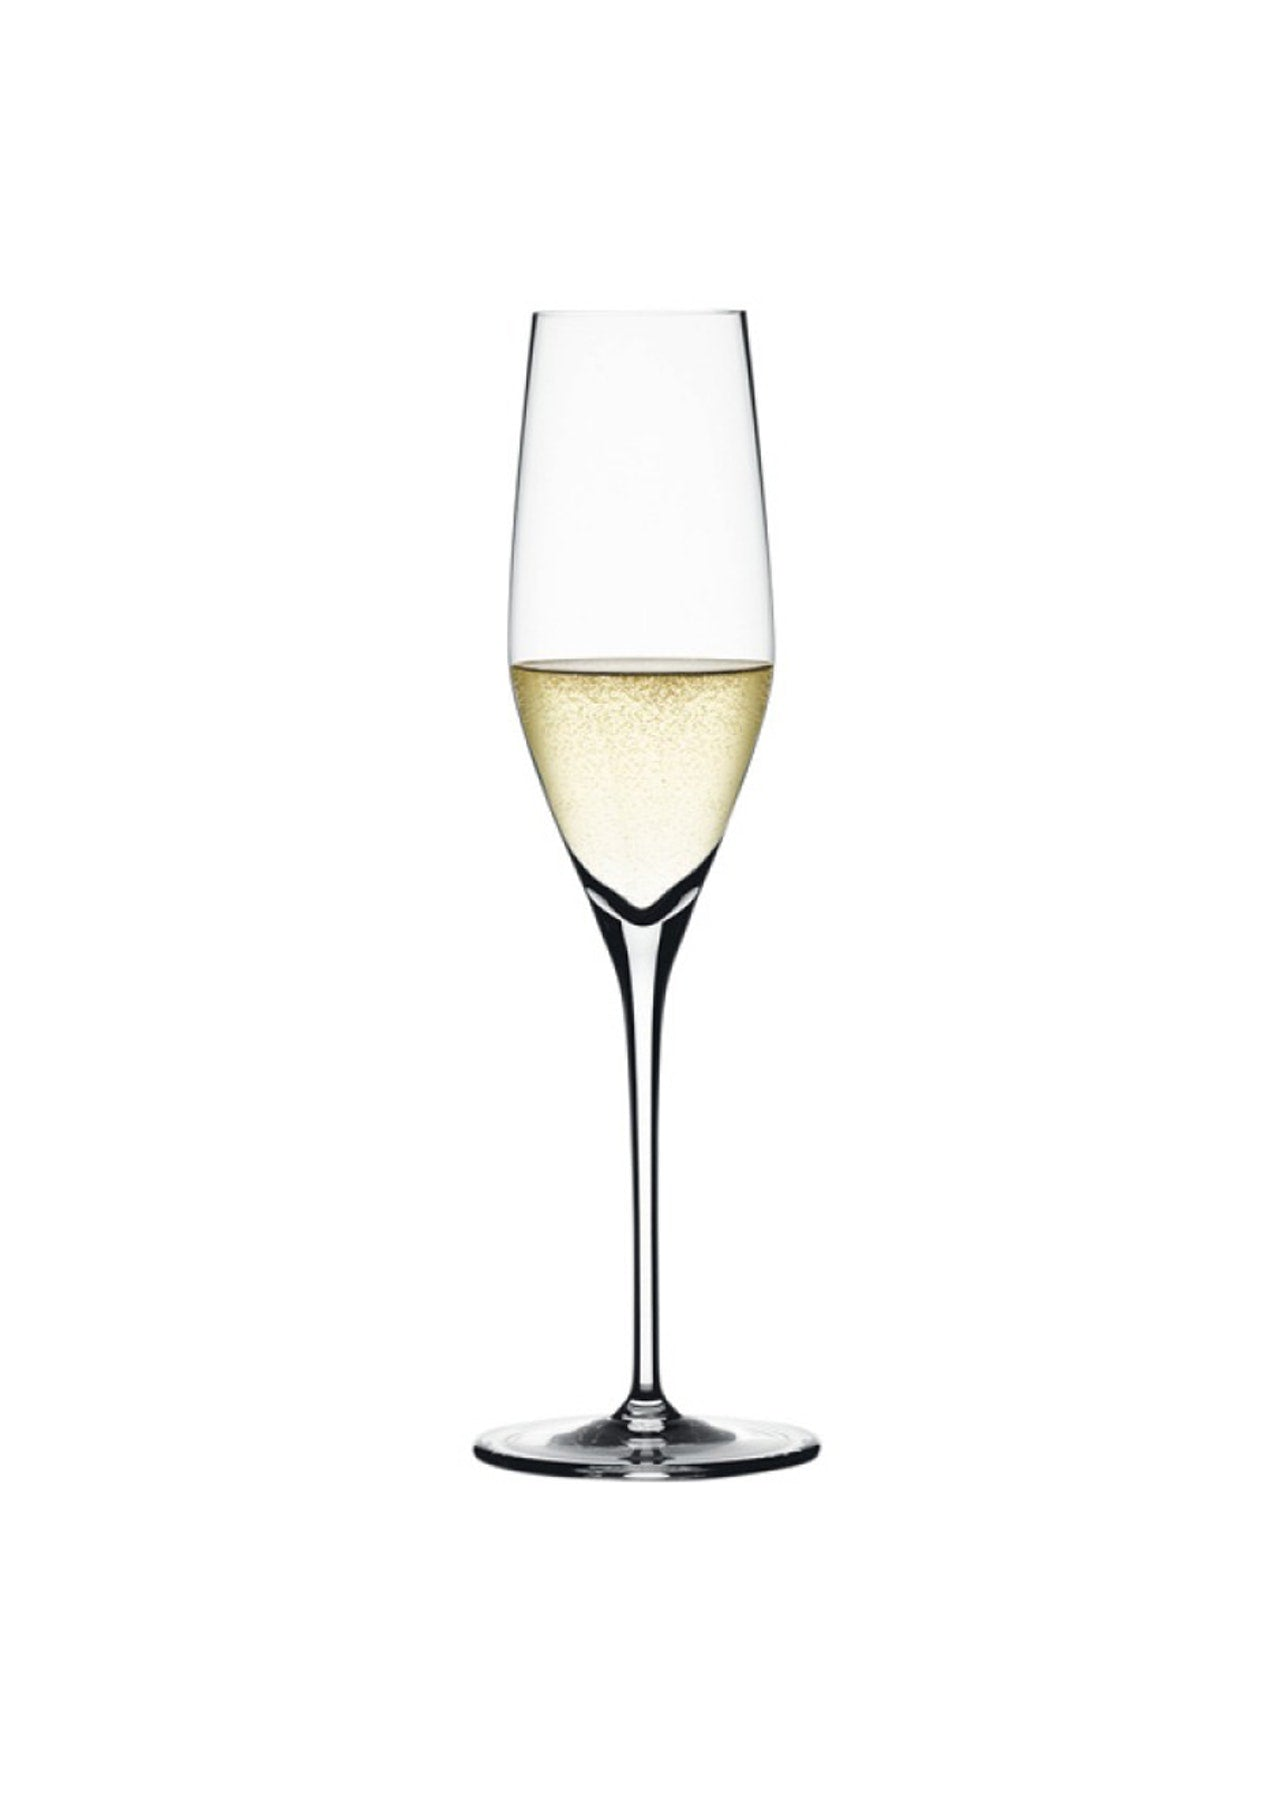 Spiegelau Authentis Champagne Glass